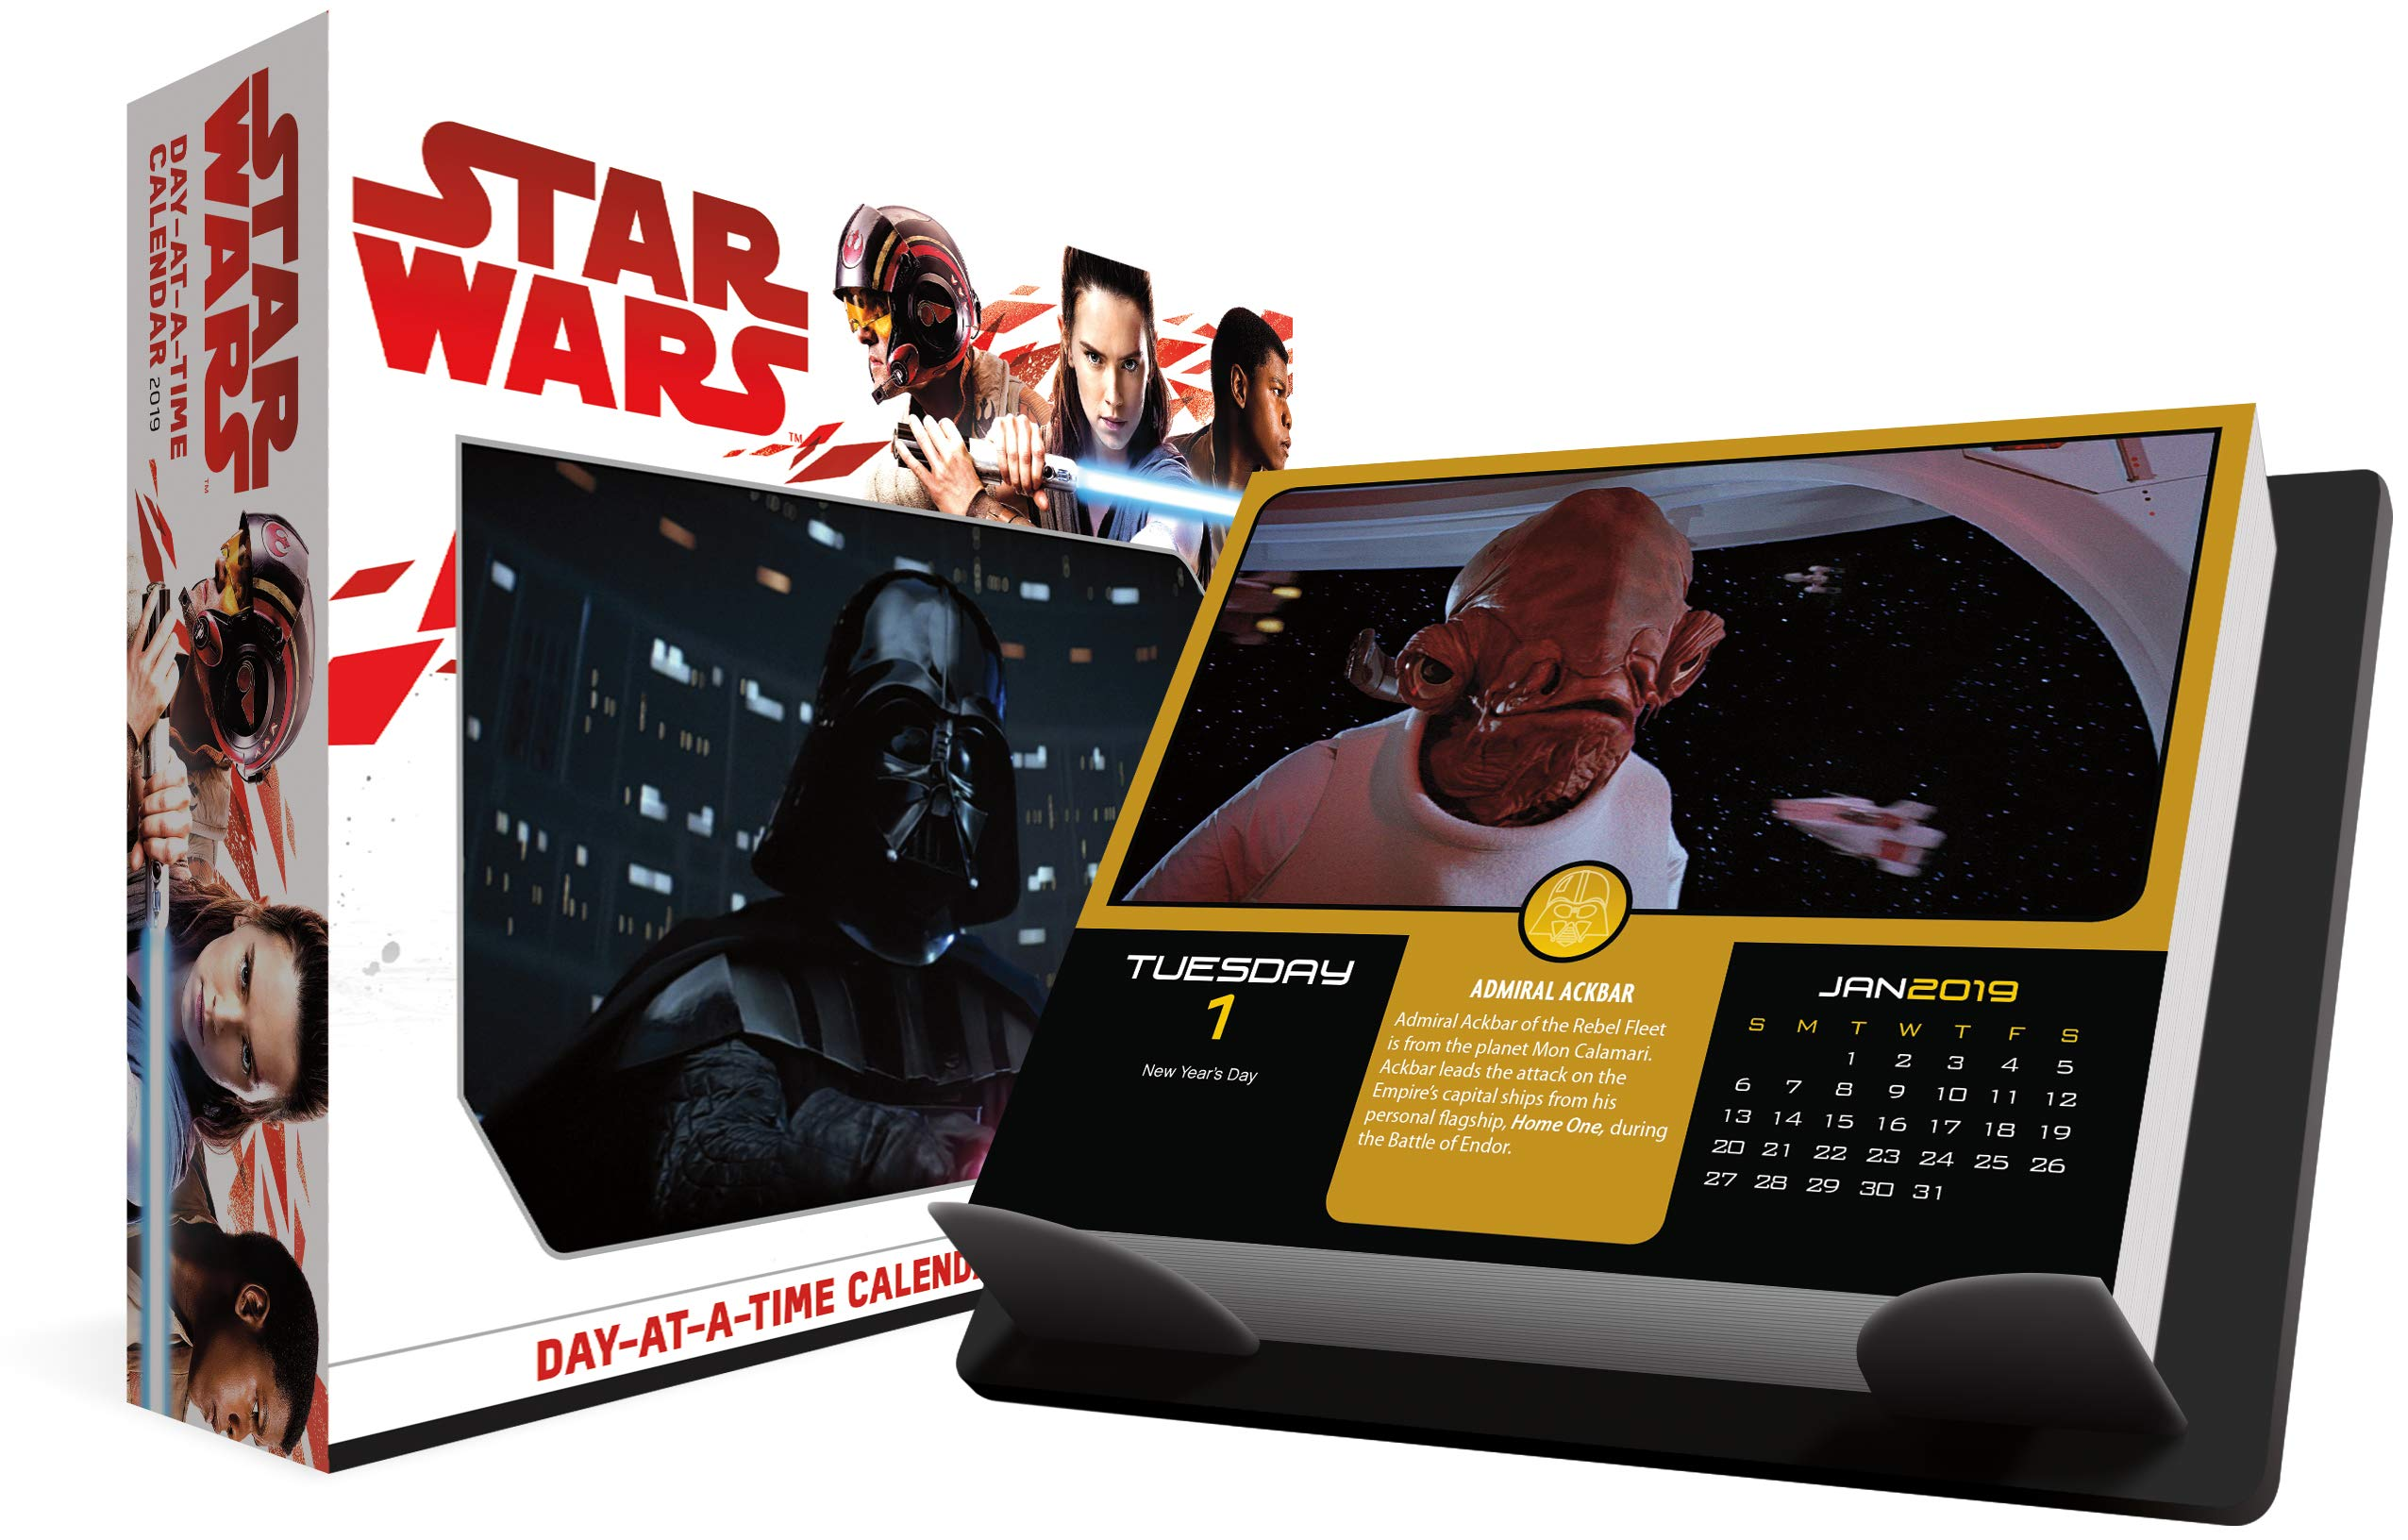 2019 Star Wars Day At A Time Calendar 0057668890177 Trends International Books